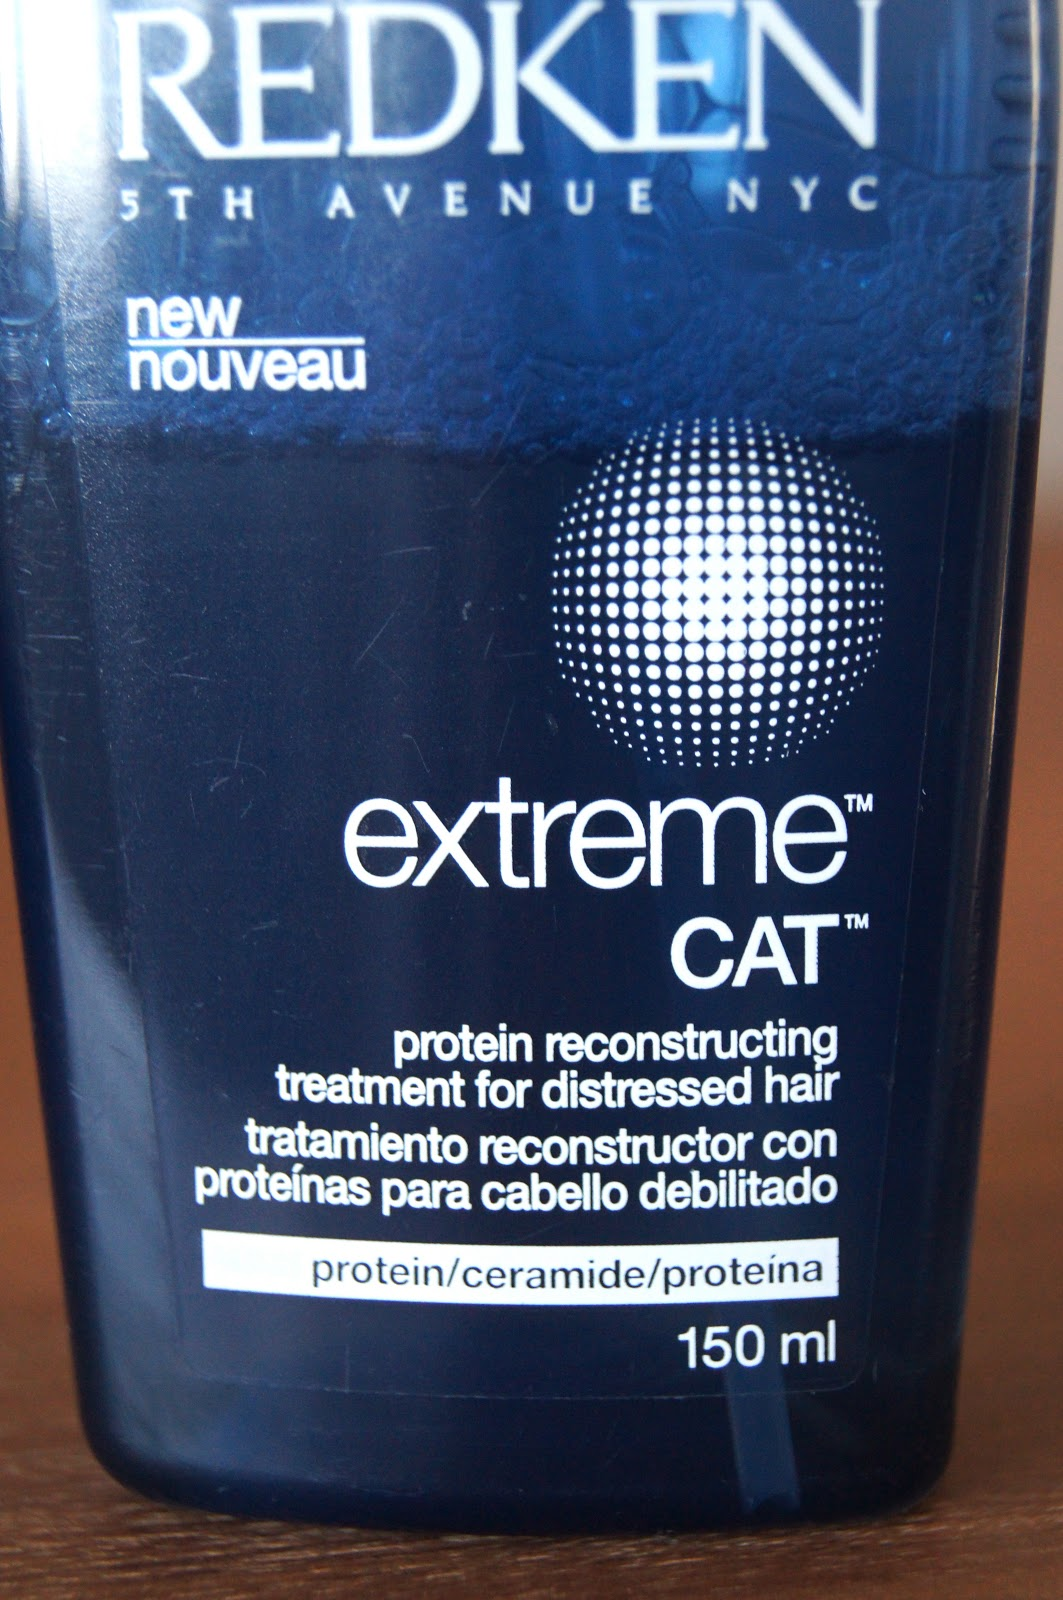 redken extreme cat protein reconstructing hair treatment review